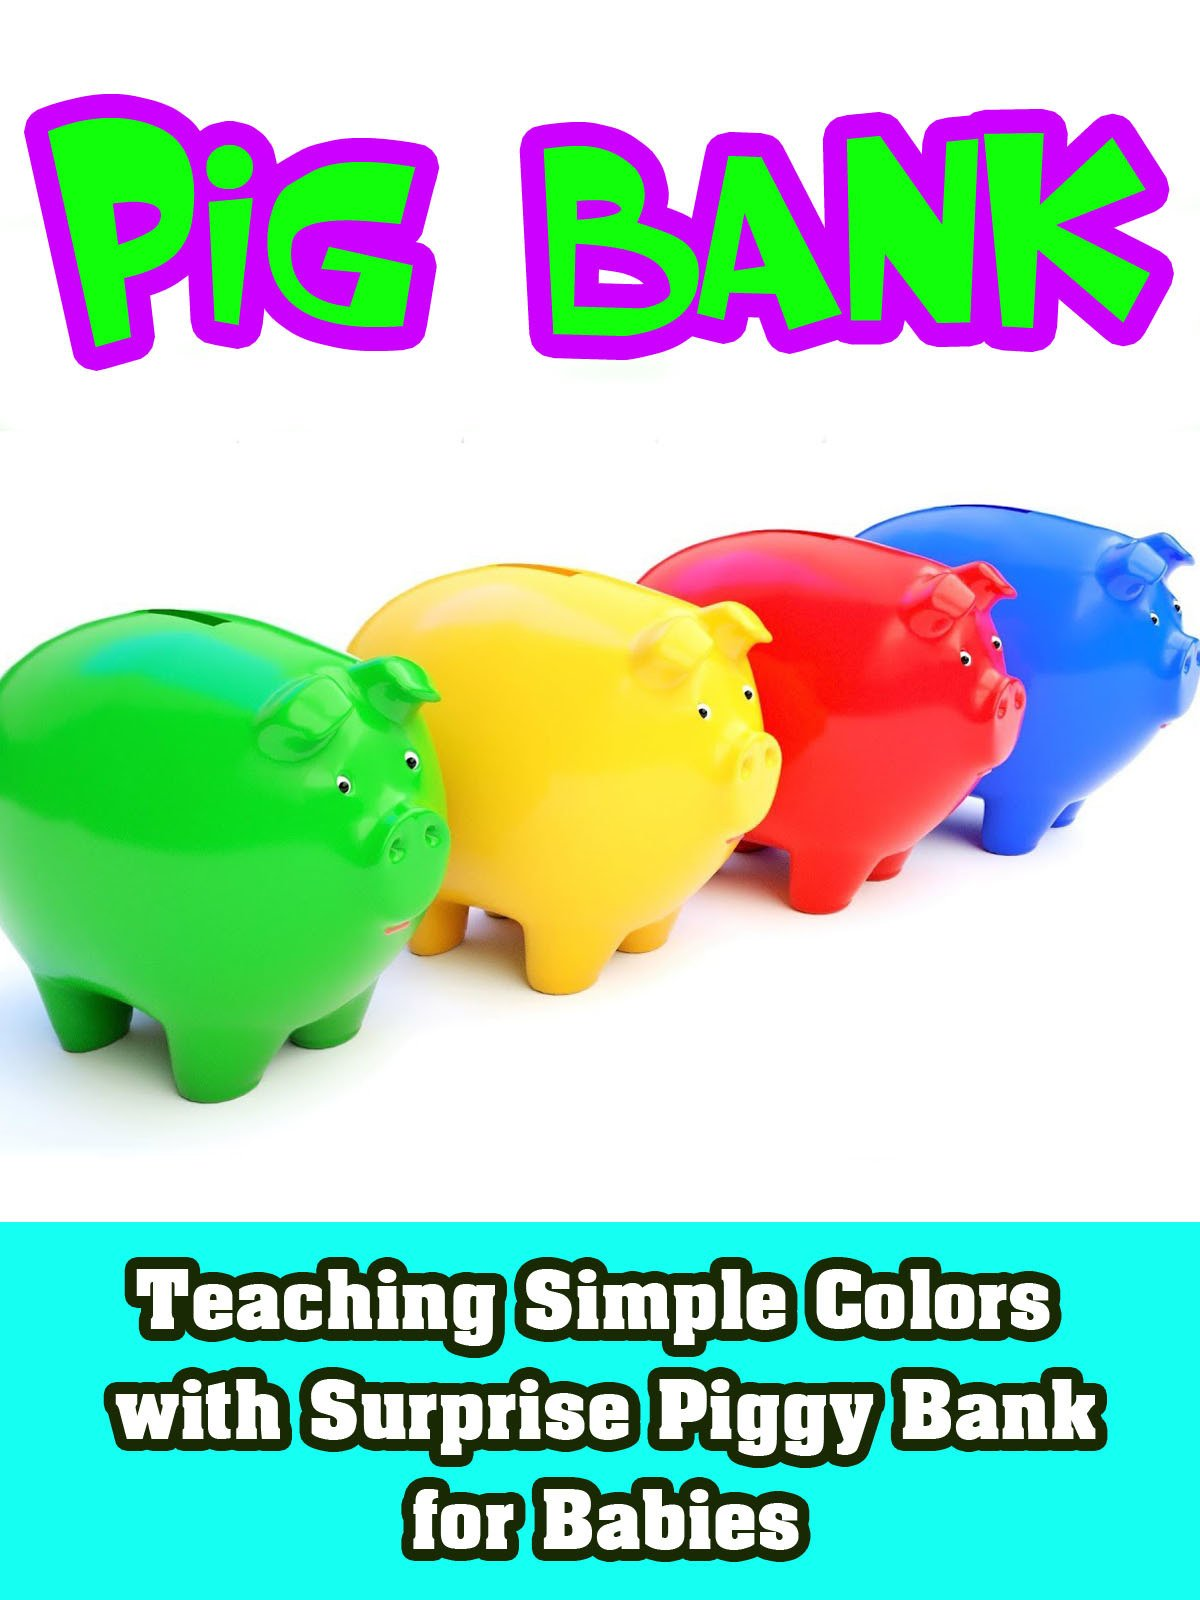 Teaching Simple Colors with Surprise Piggy Bank for Babies